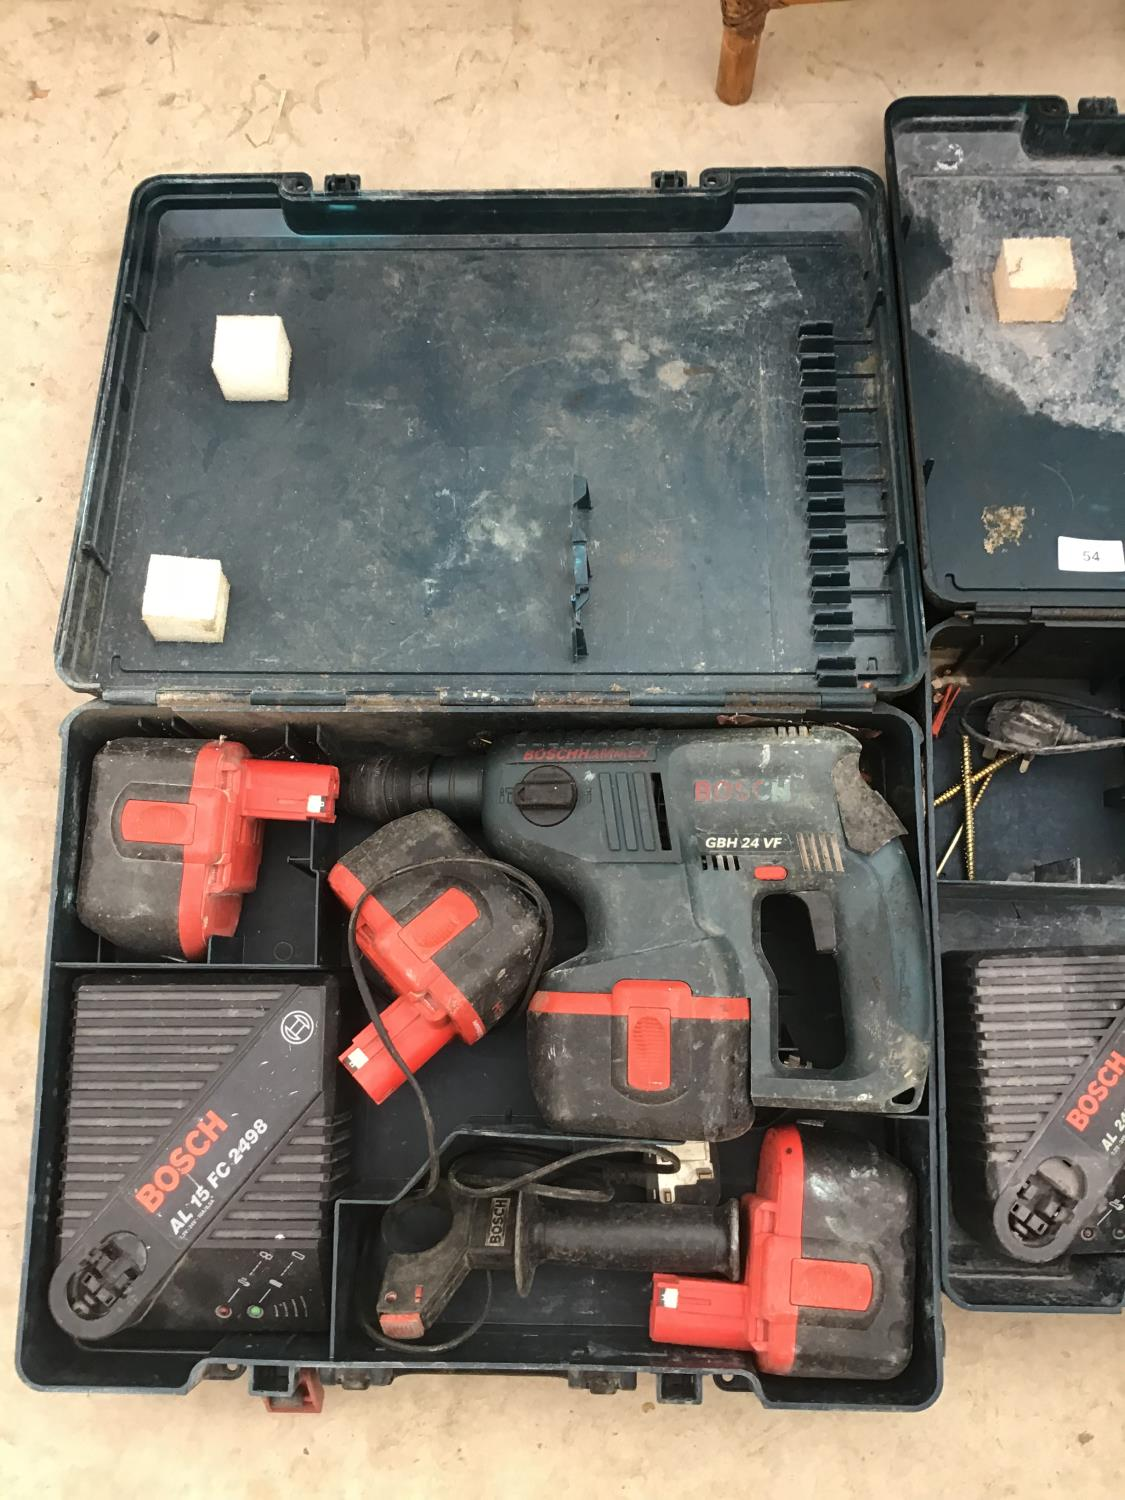 Lot 54 - TWO CASED BOSCH DRILLS WITH BATTERIES AND CHARGERS ONE DRILL IN WORKING ORDER